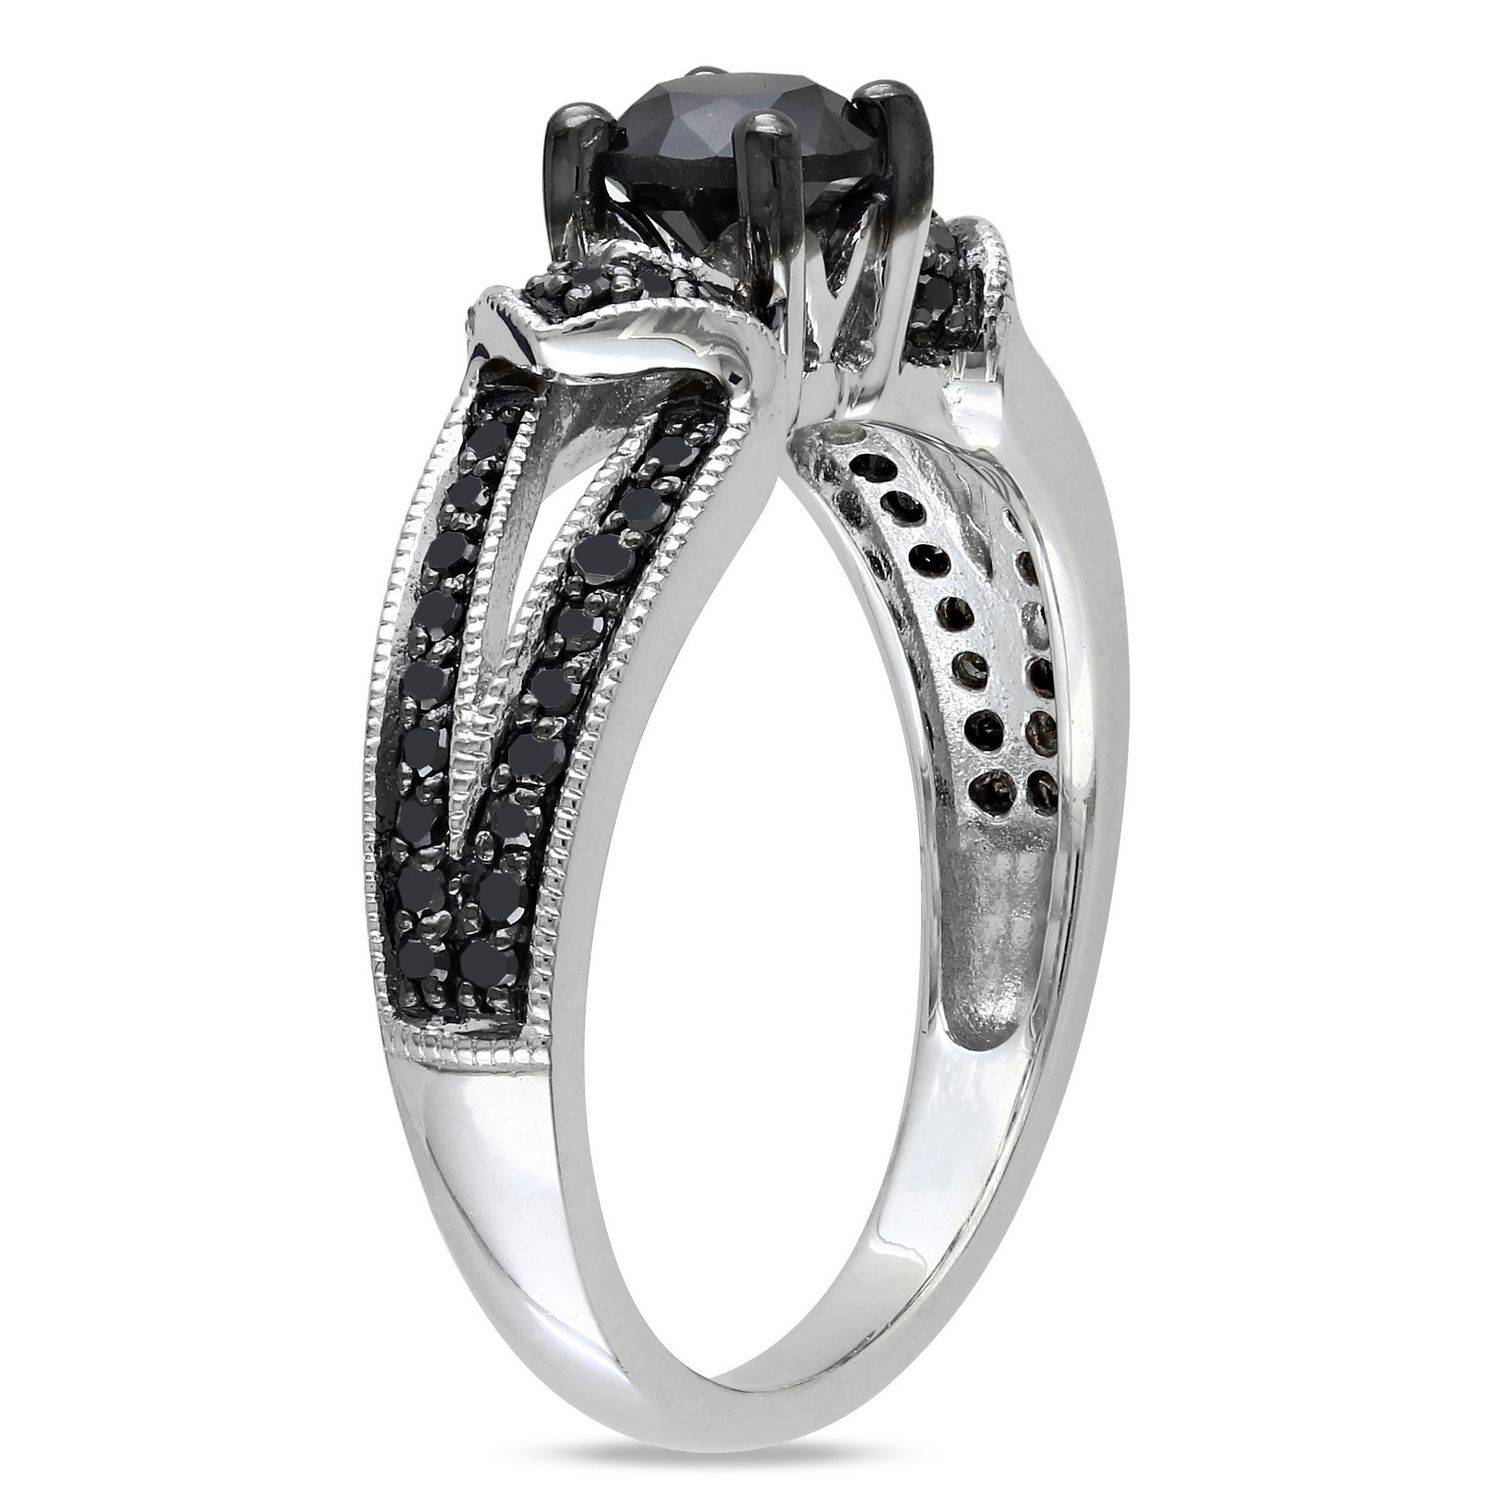 fire glacier charm canadian ring product diamond engagement